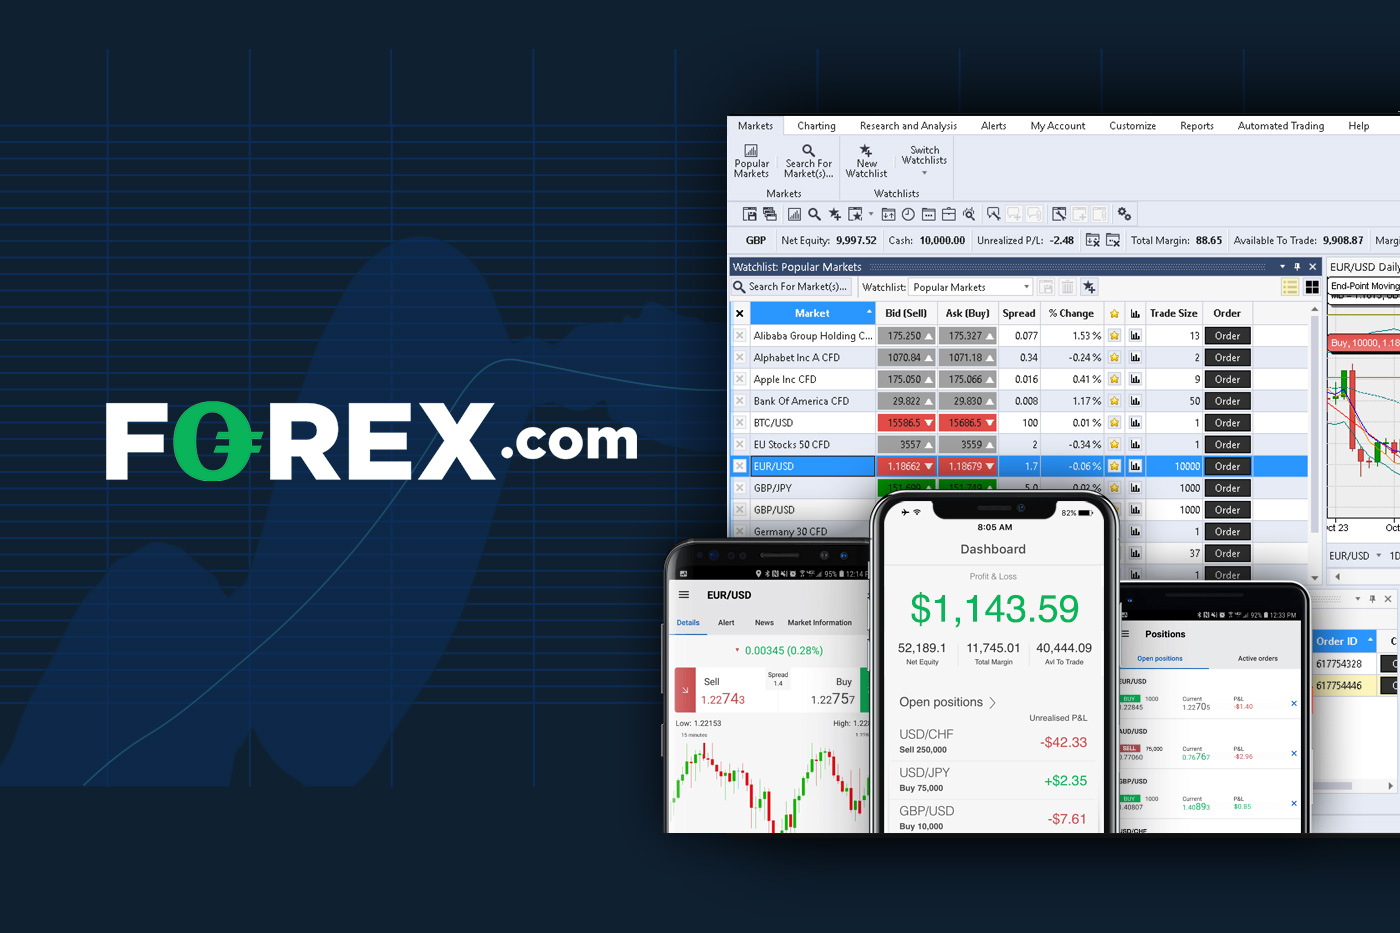 Forex com review